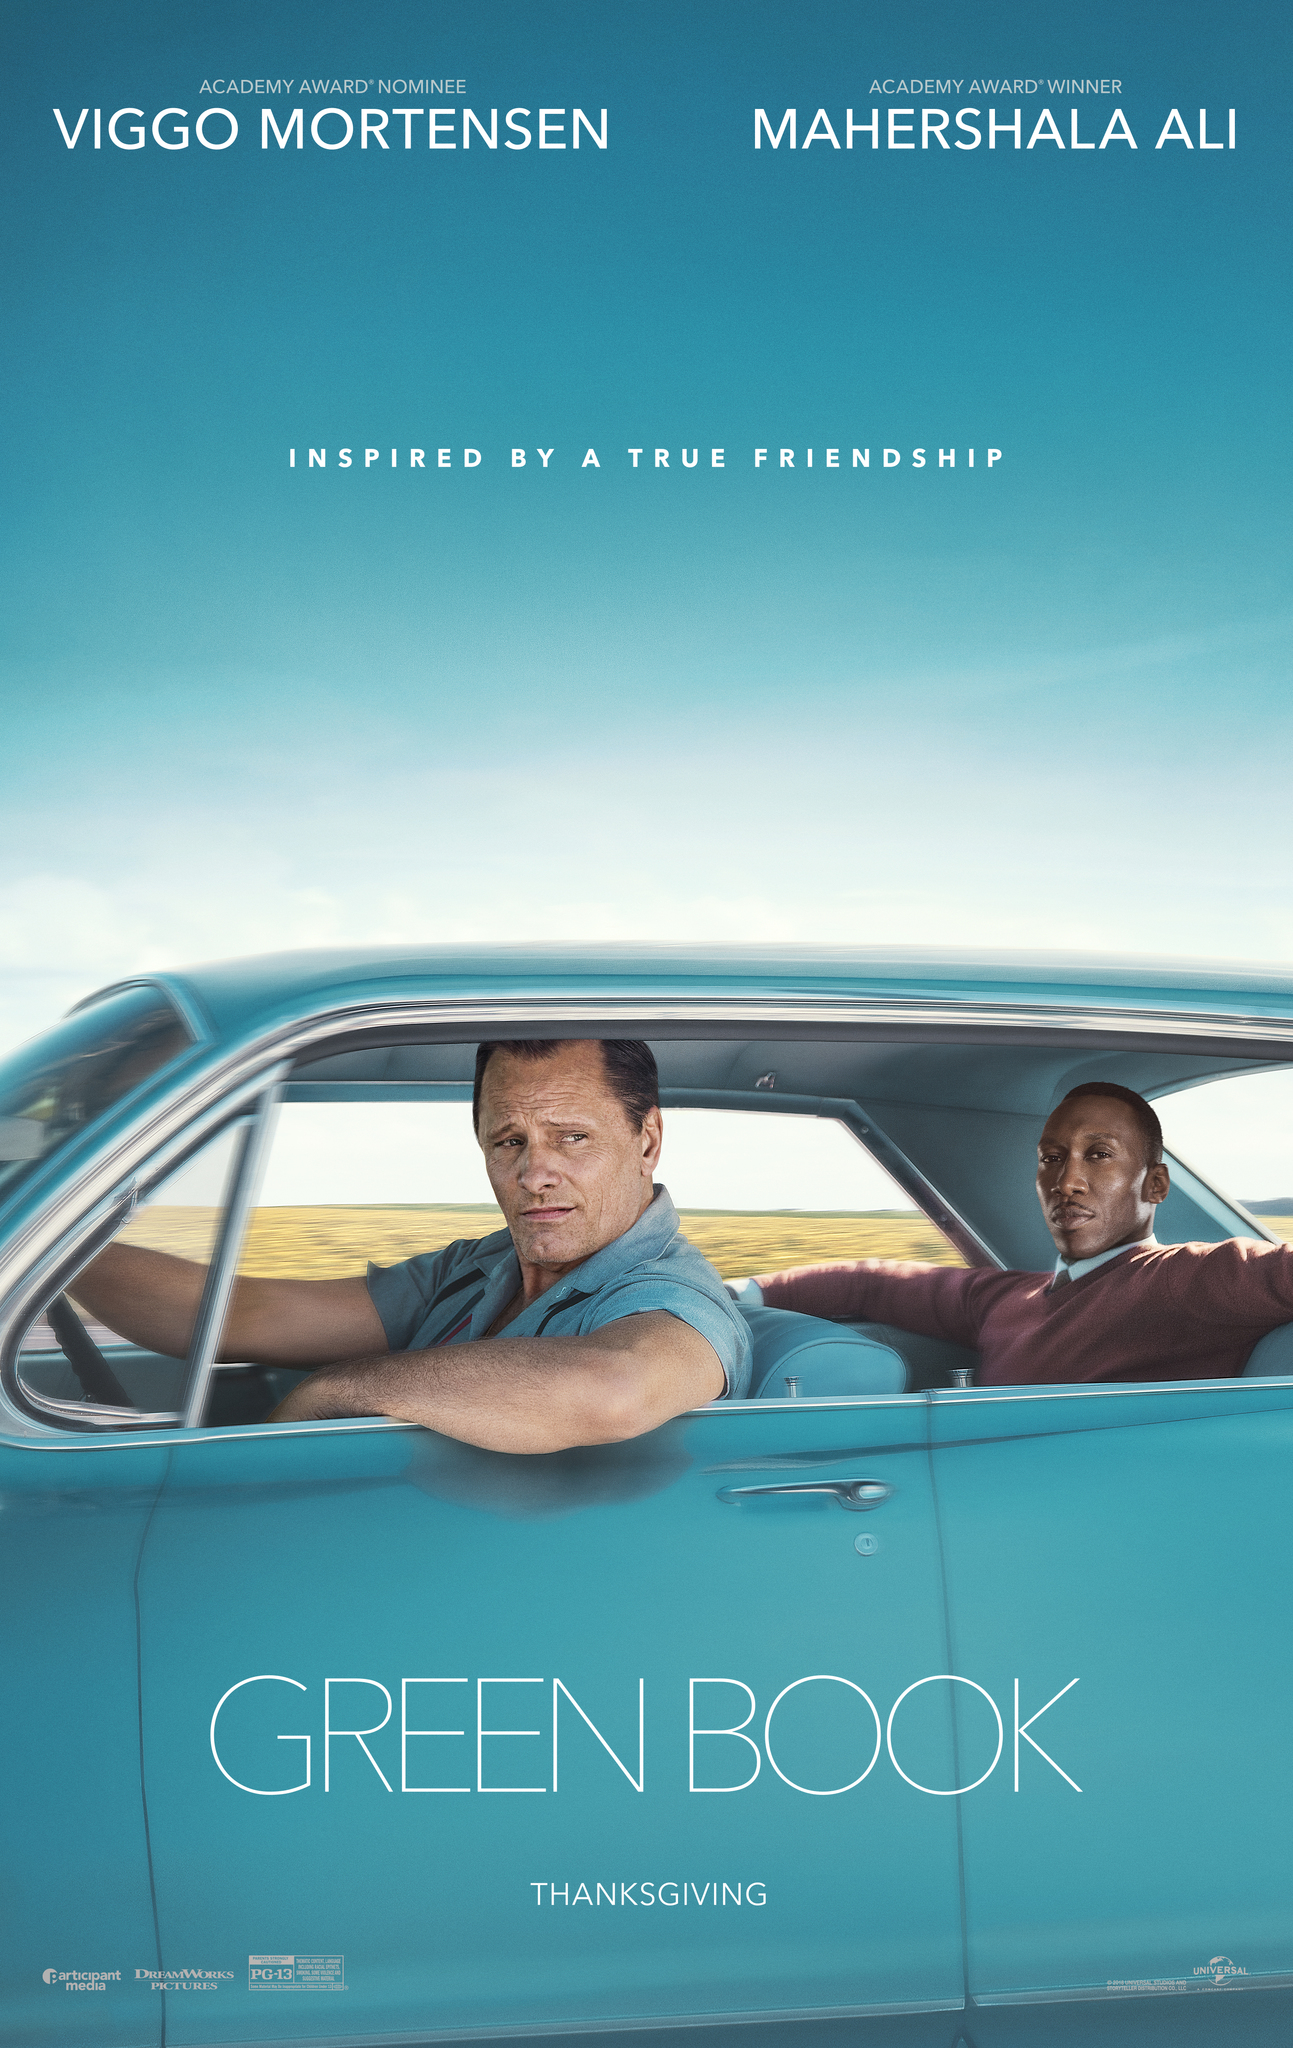 Green Book     (2018) dir. Peter Farrelly Rated: PG-13 image: ©2018  Universal Pictures